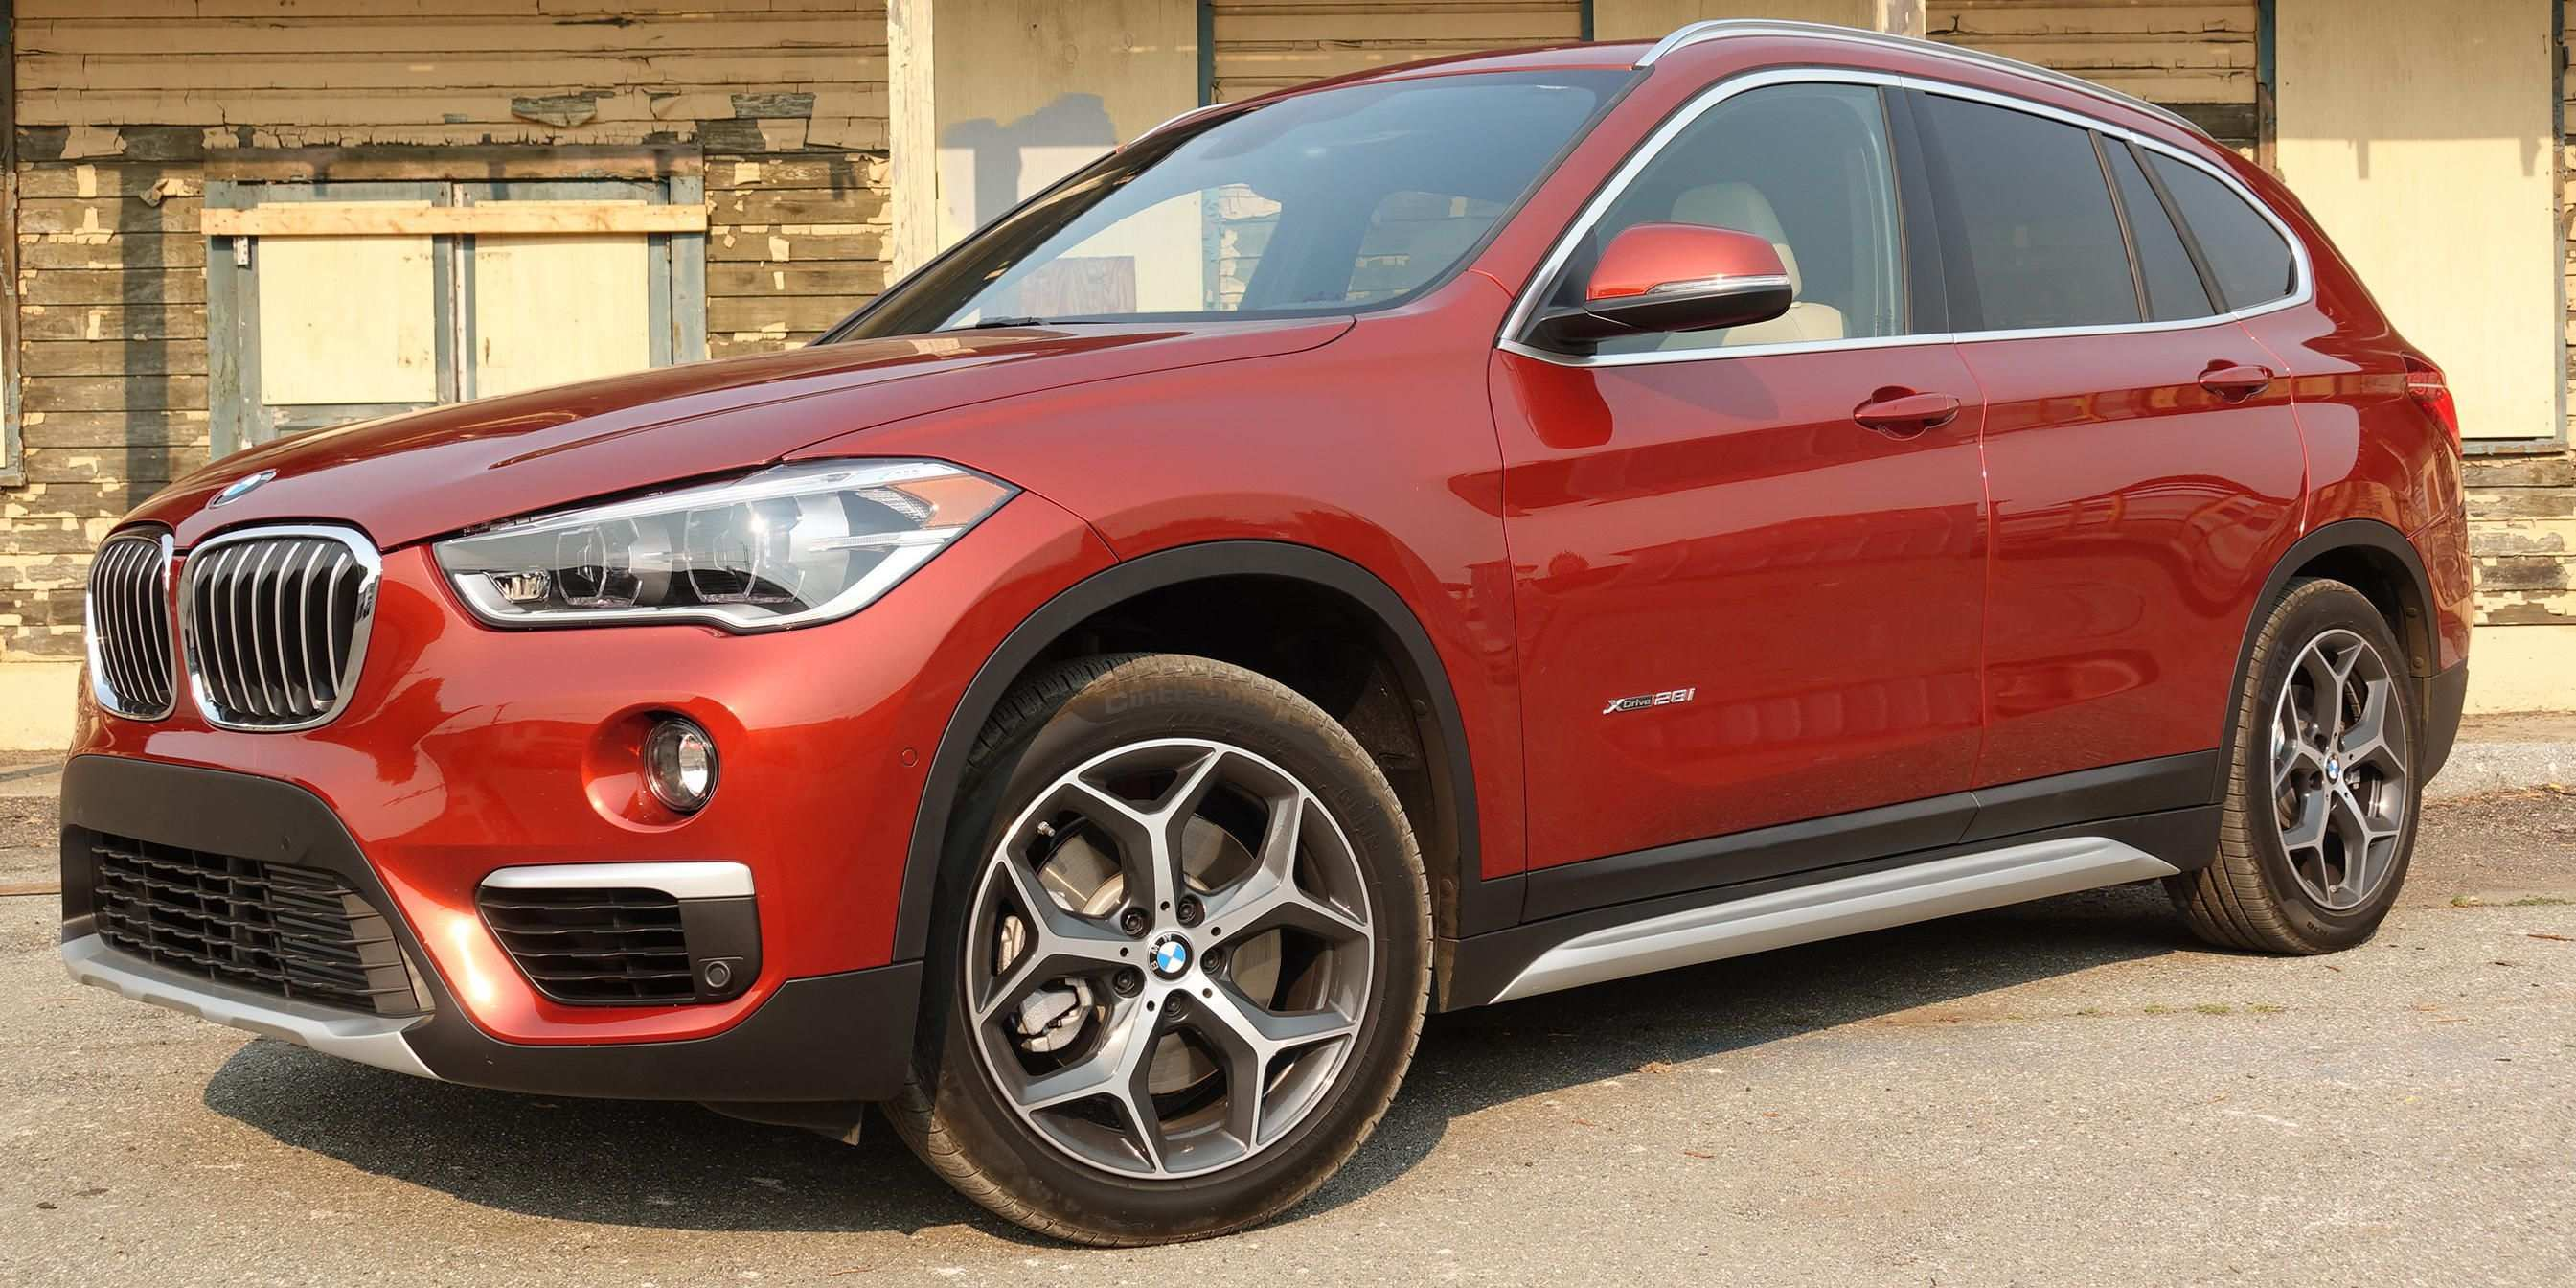 42 Best Review The X1 Bmw 2019 Price And Review Price and Review with The X1 Bmw 2019 Price And Review